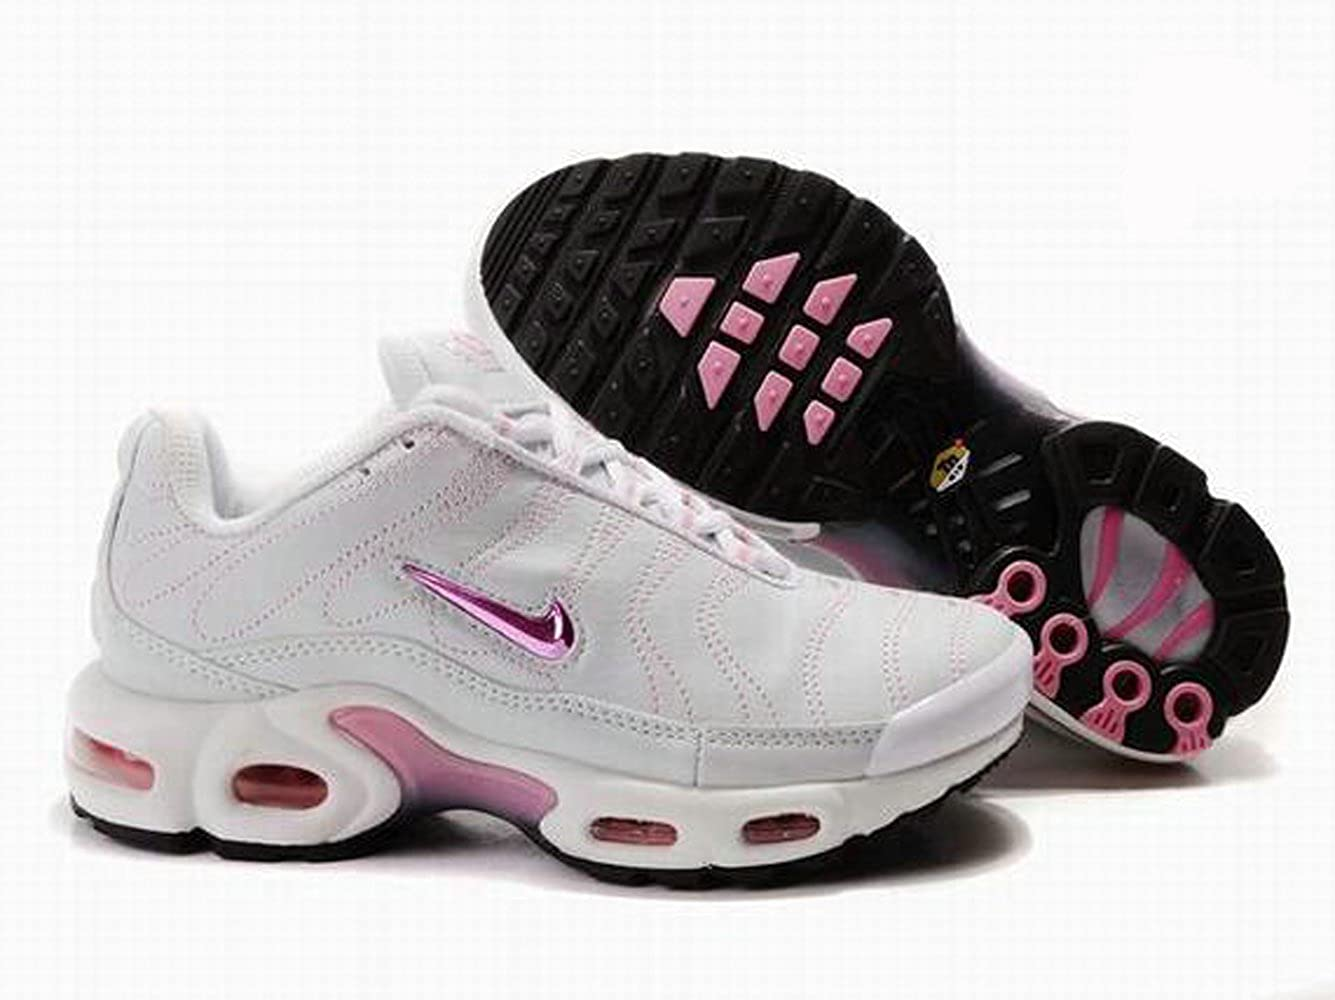 san francisco 8ba0e 8a6e4 Nike Air Tuned 1 TN White/Pink UK 5.5: Amazon.co.uk: Shoes ...